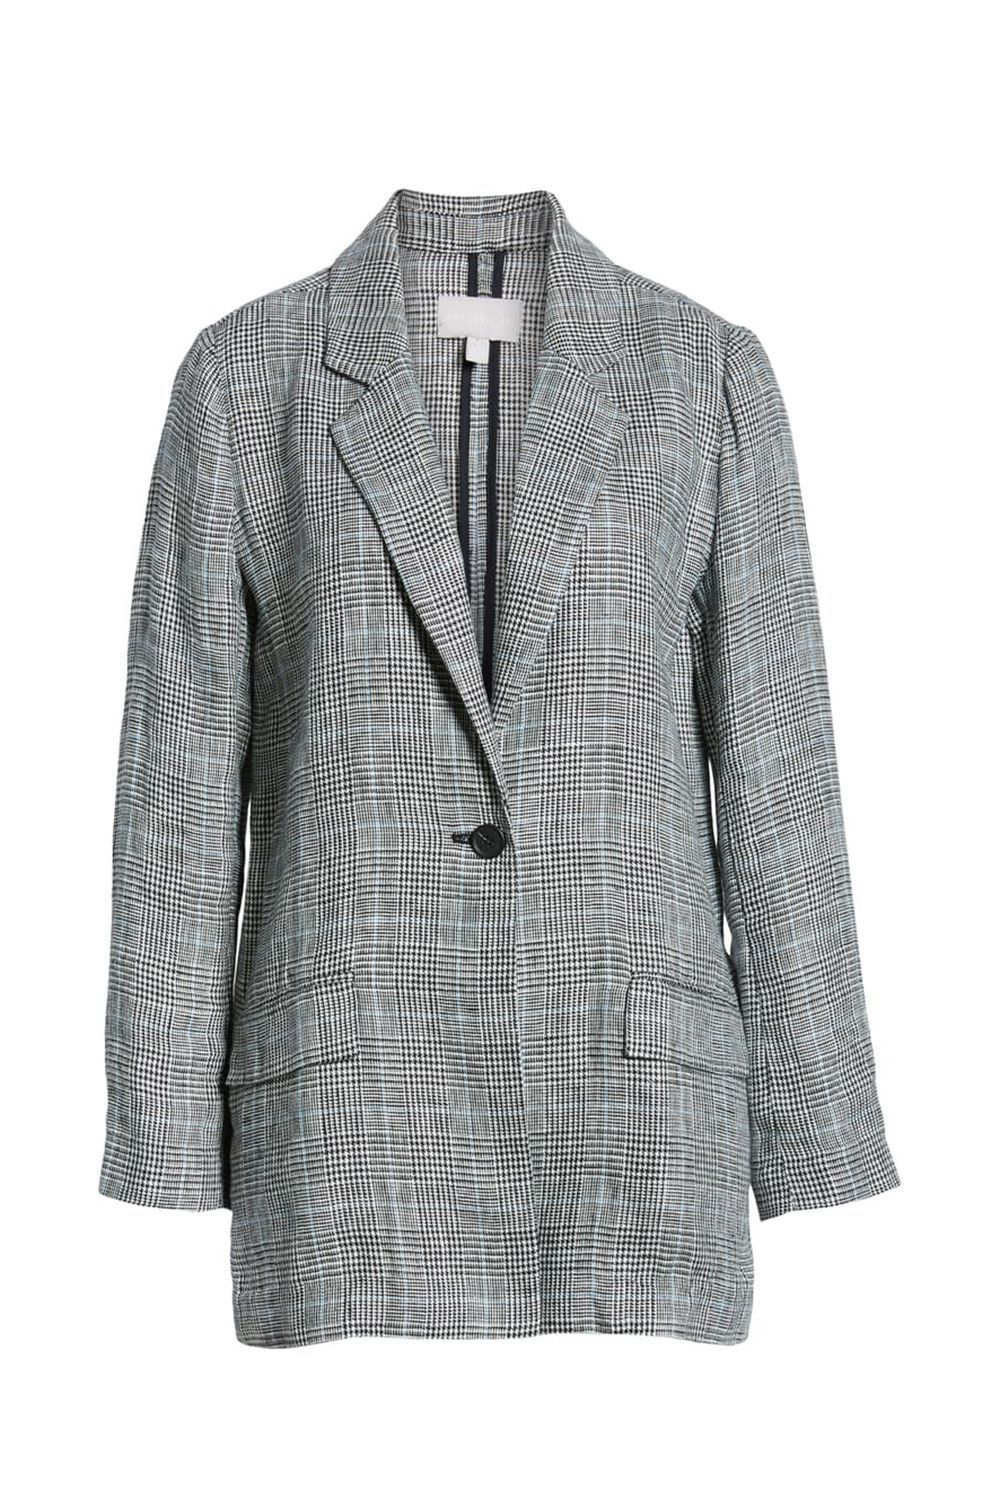 6a8302c653c Single Button Linen Blazer